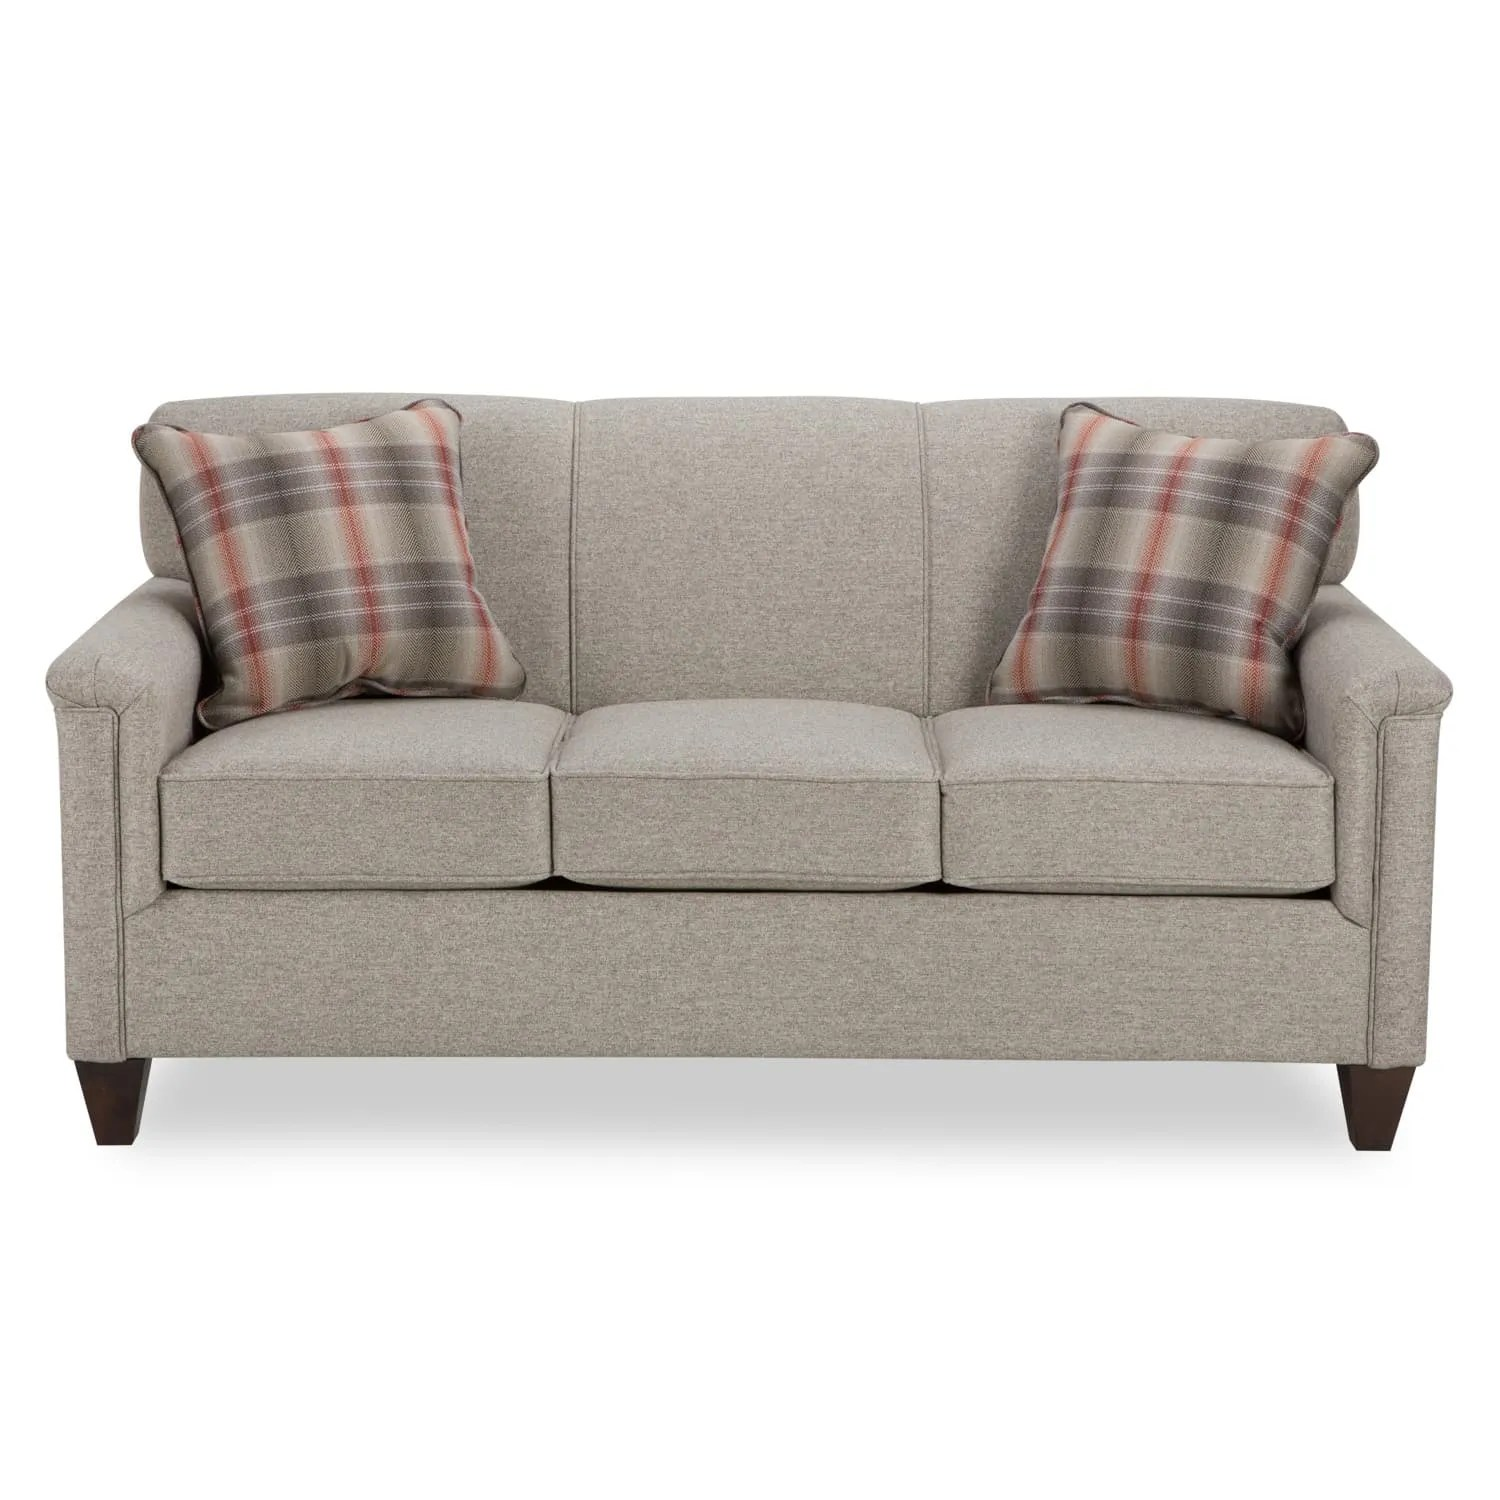 Room Furniture Living Room Sofas Furniture Sales From Wg R In Wisconsin